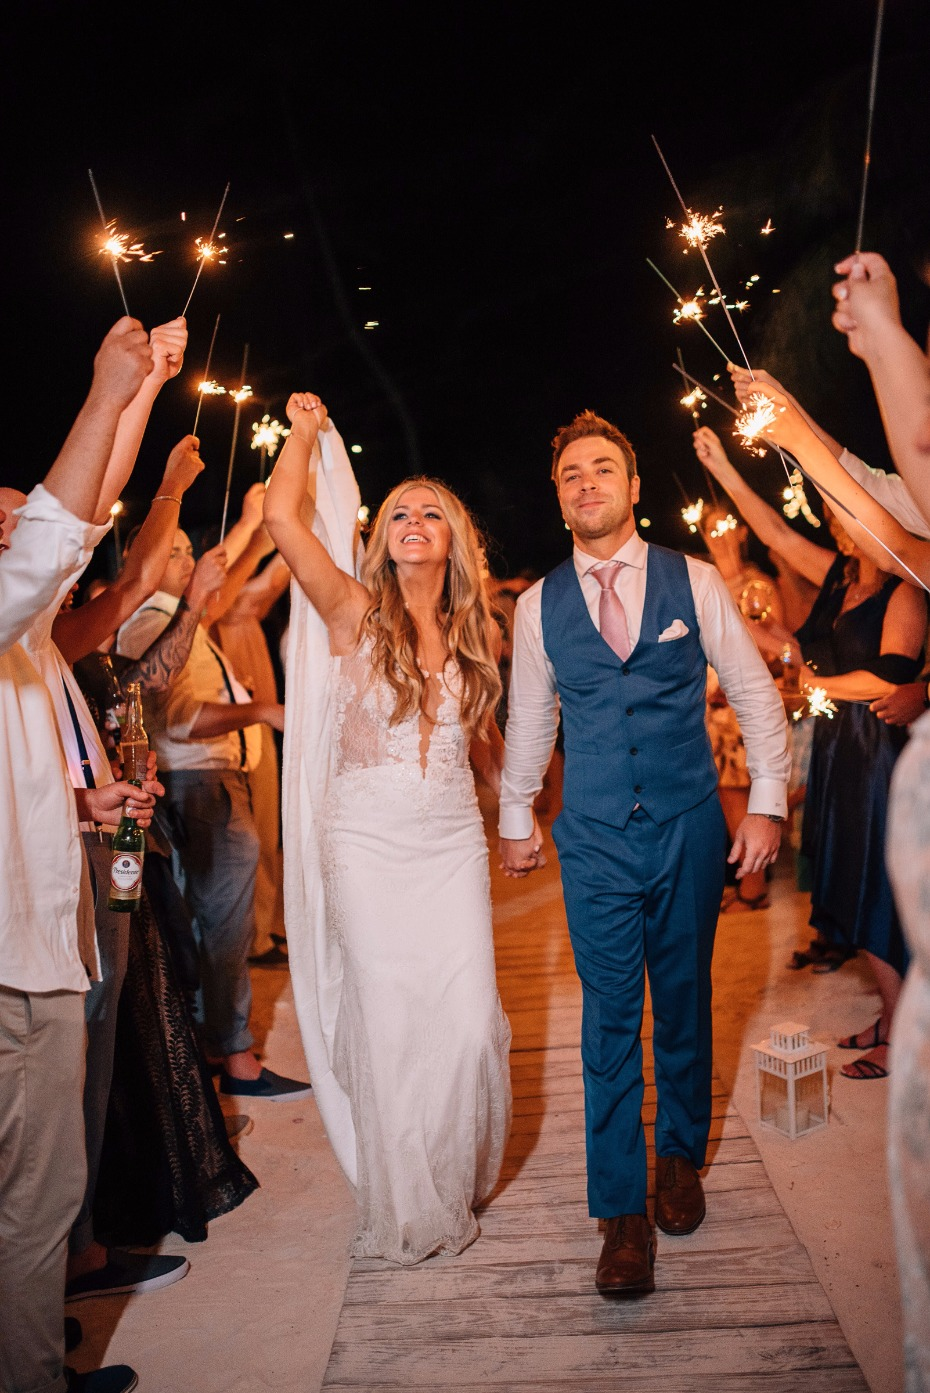 sparkler exit for the bride and groom at their beach wedding